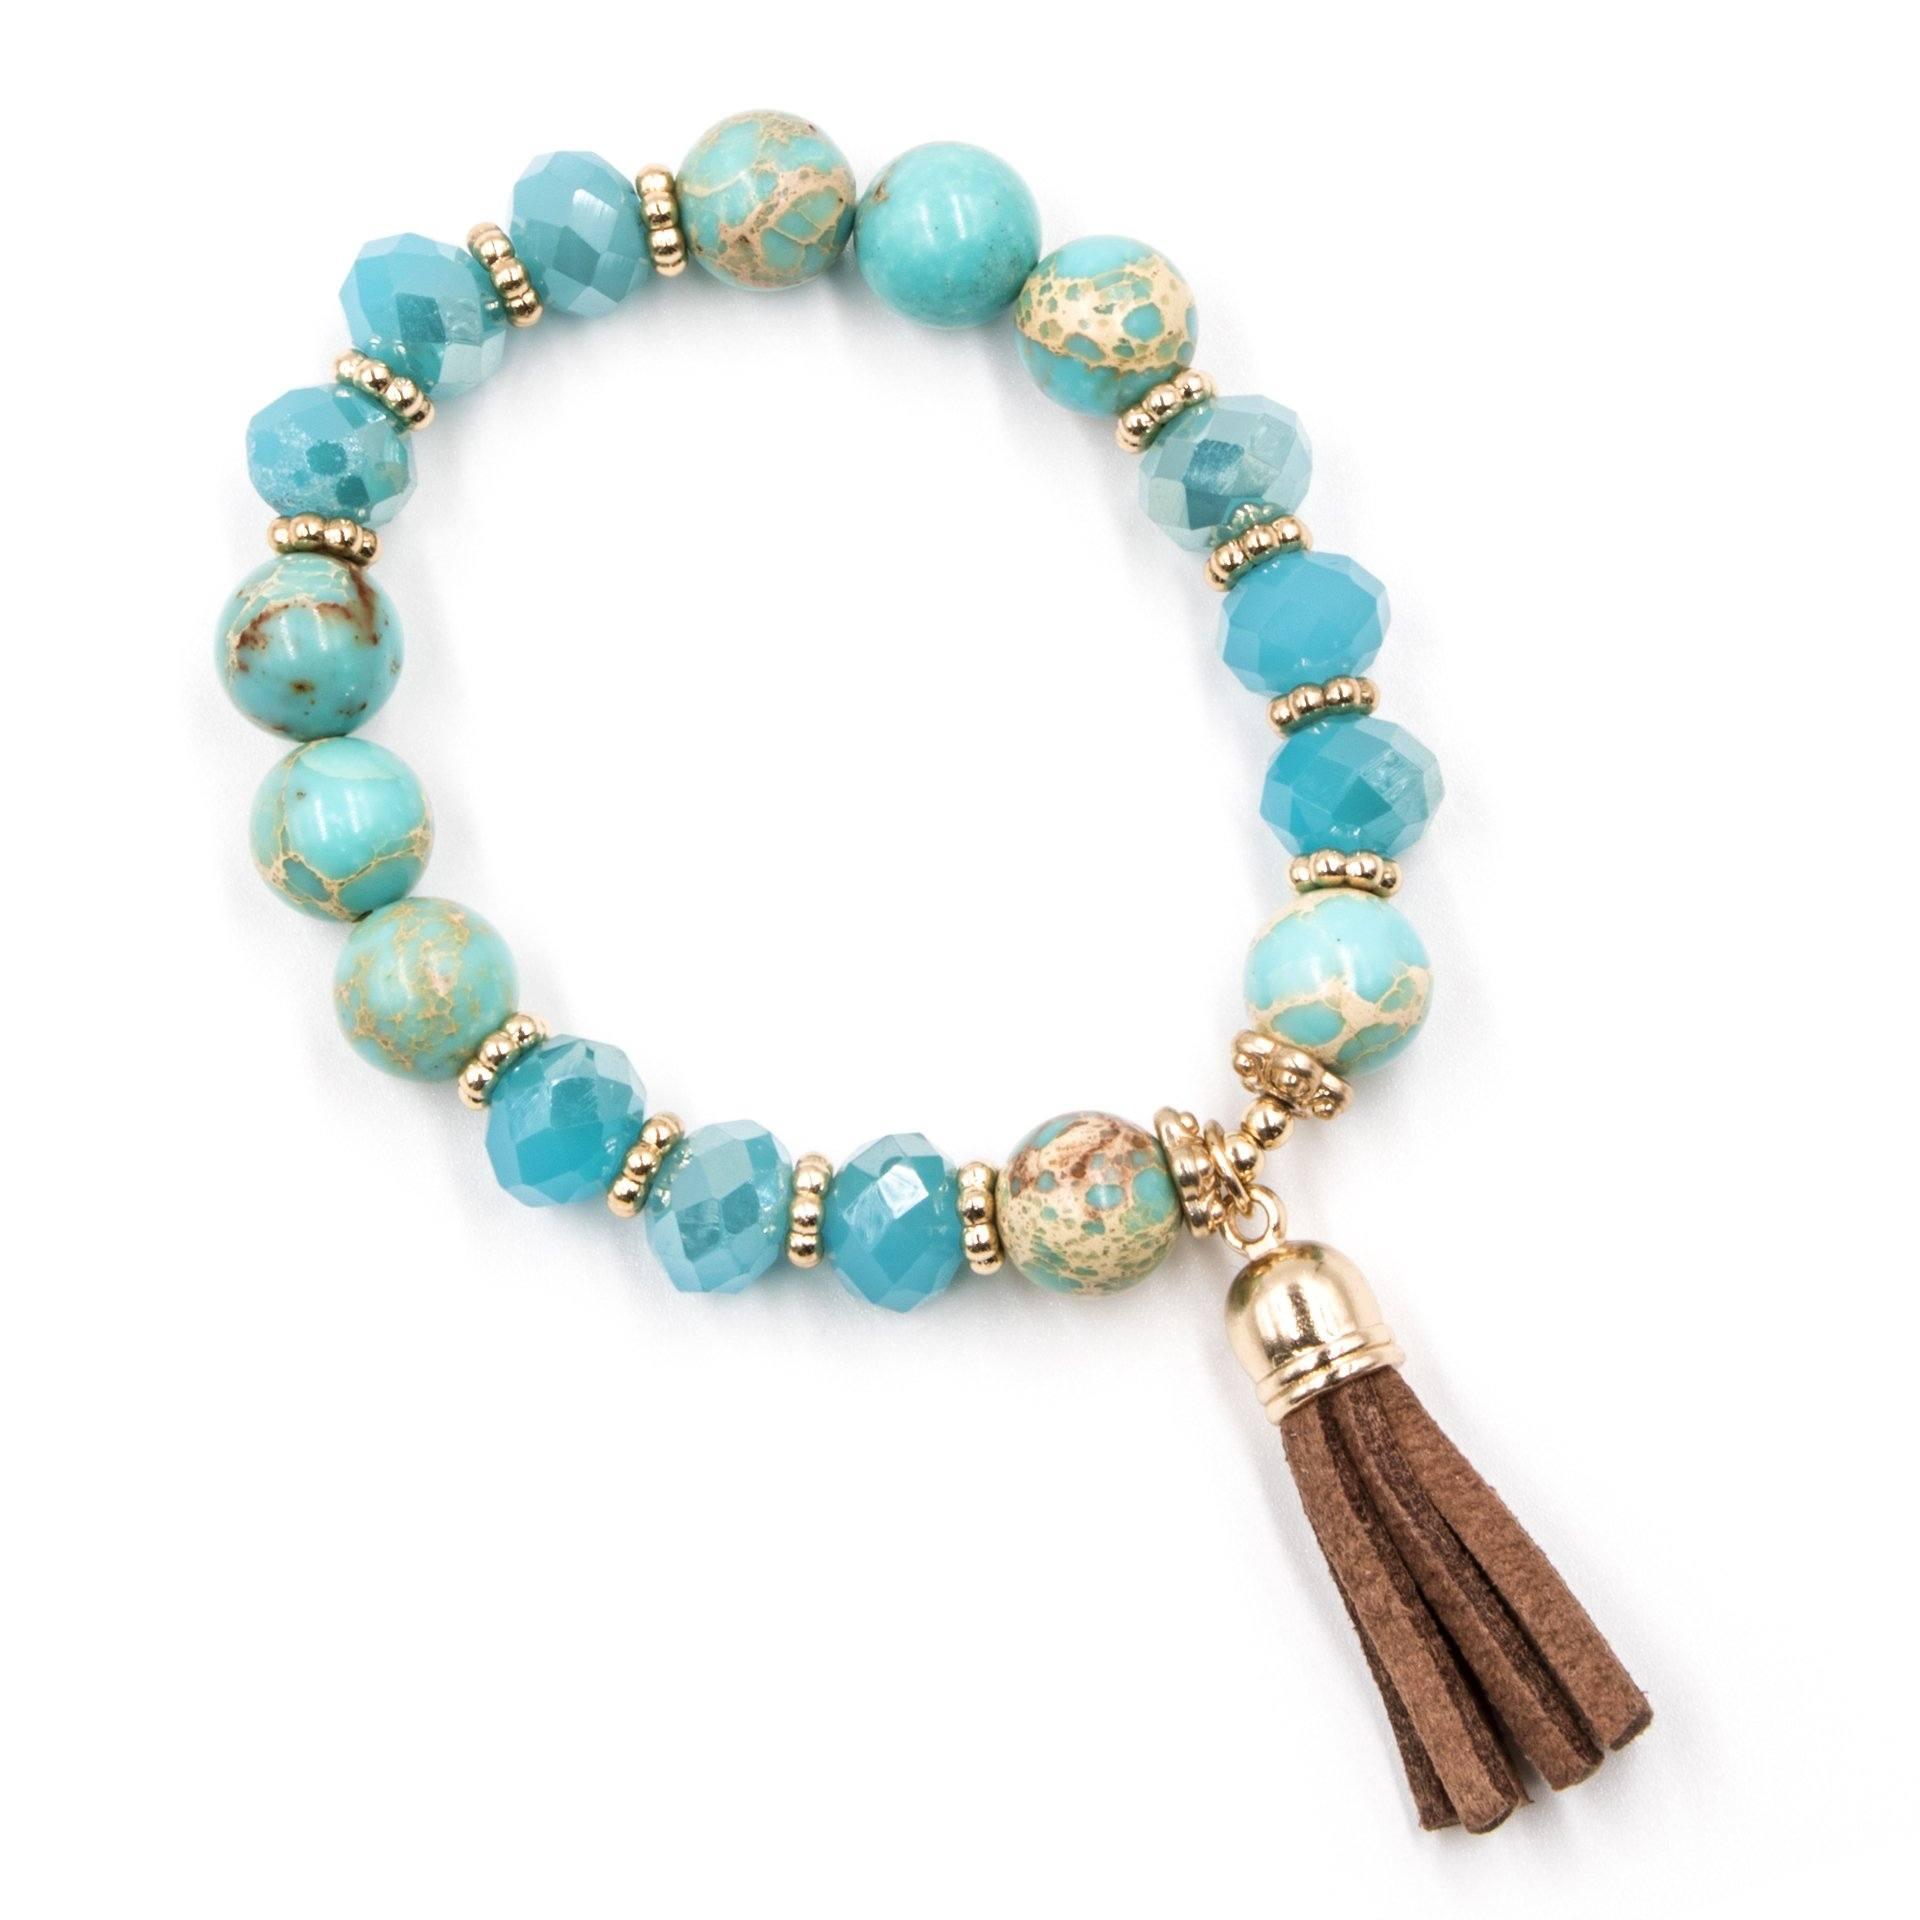 Multi-Beaded Turquoise Bracelet with Suede Tassel - Arlo and Arrows